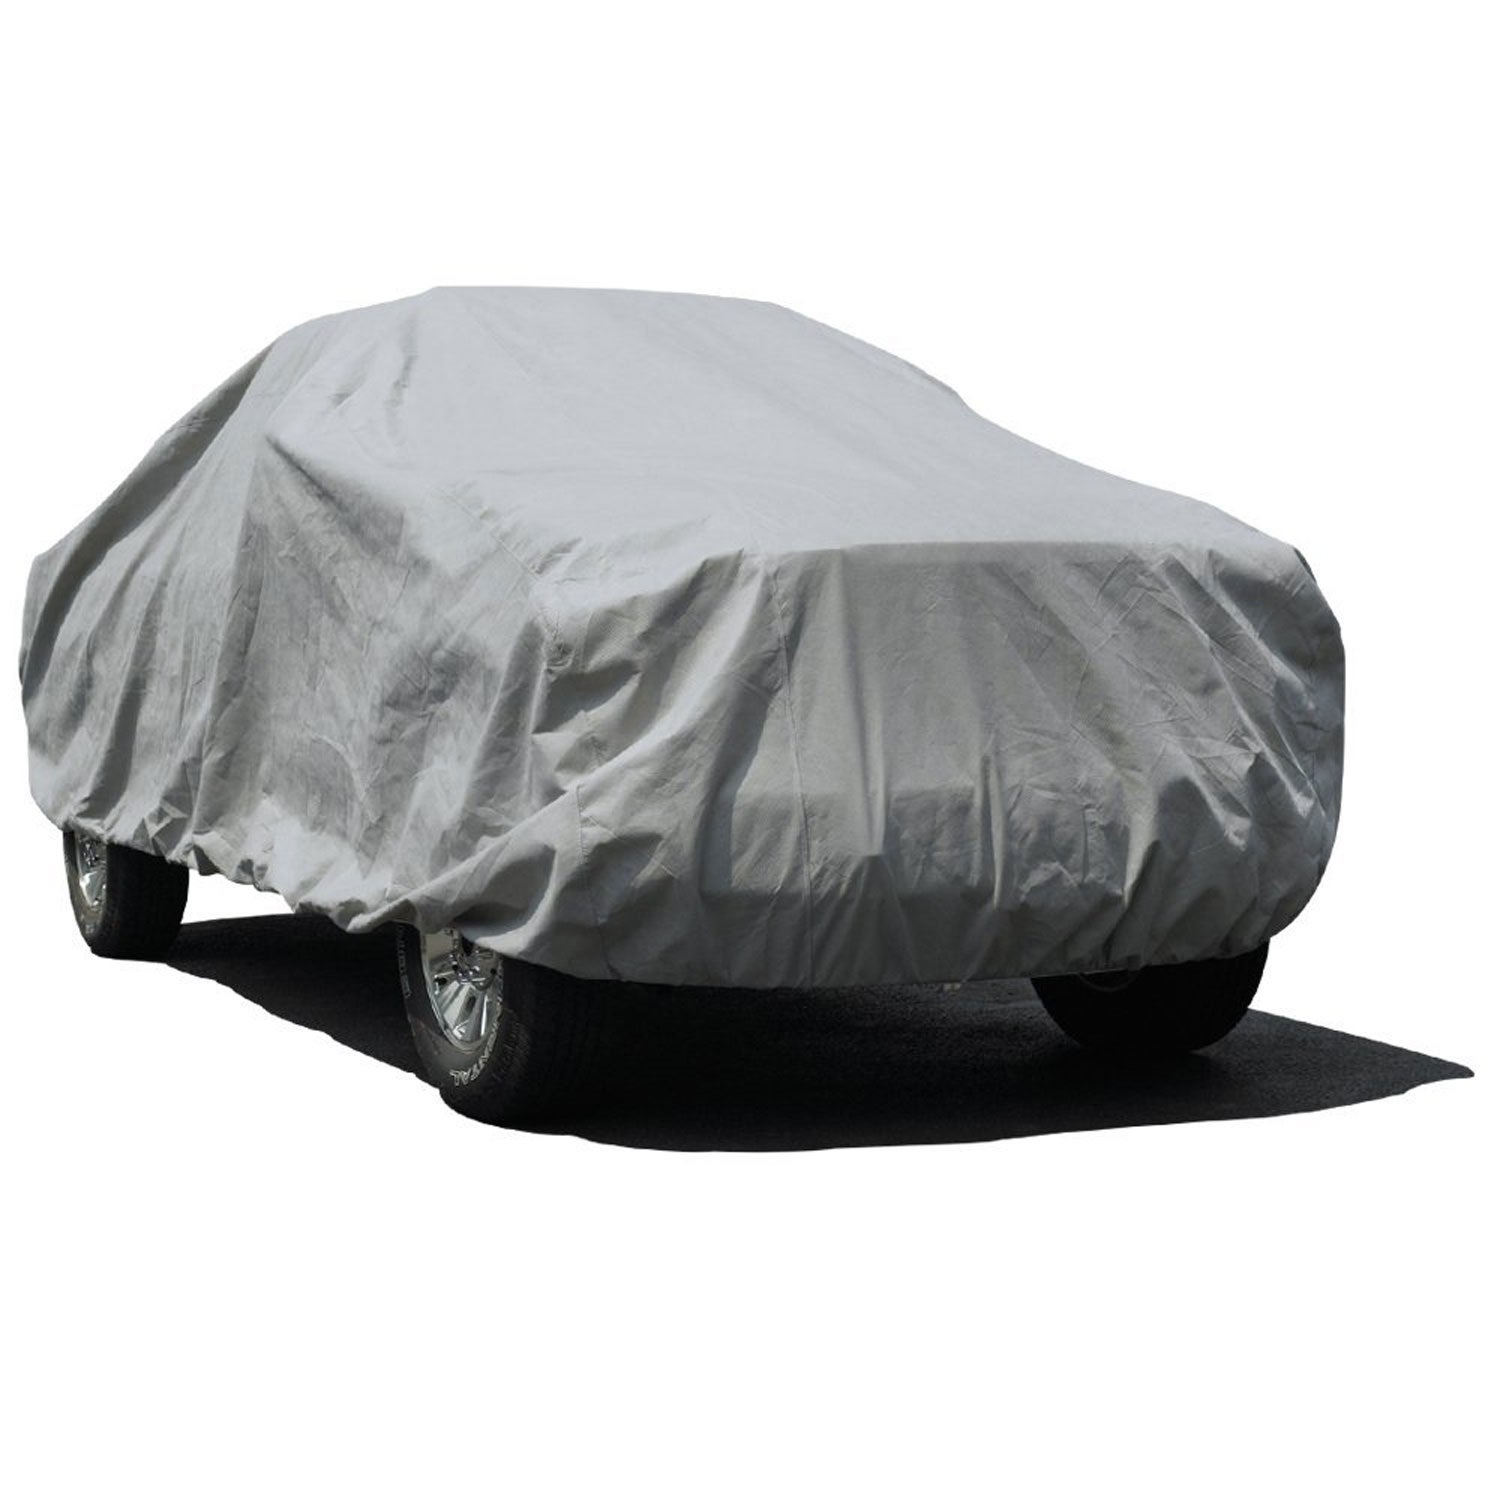 Budge Lite Truck Cover Fits Truck with Short Bed Extended Cab Pickups up to 232 inches, TB-3X - (Polypropylene, Gray)